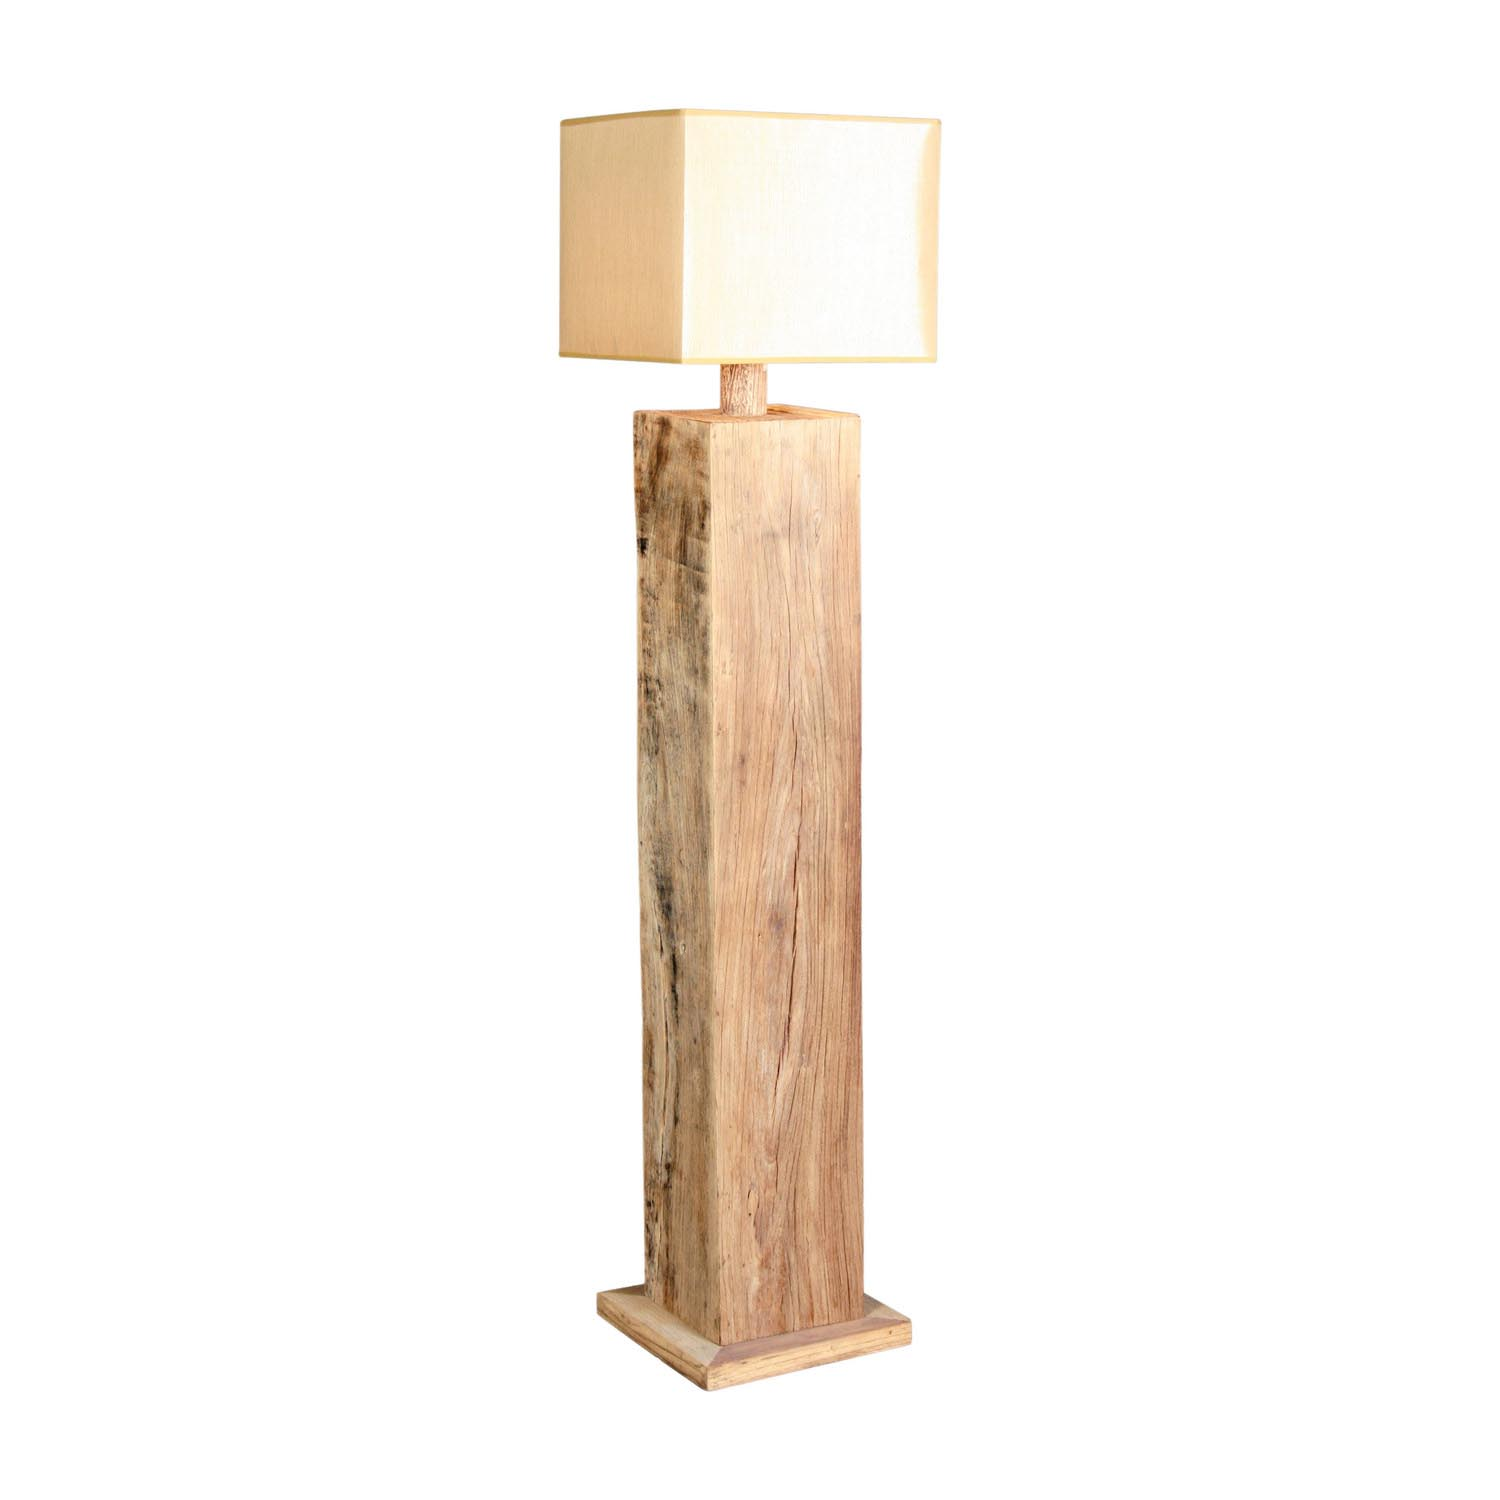 Floor Lamps Wooden Base Light Fixtures Design Ideas